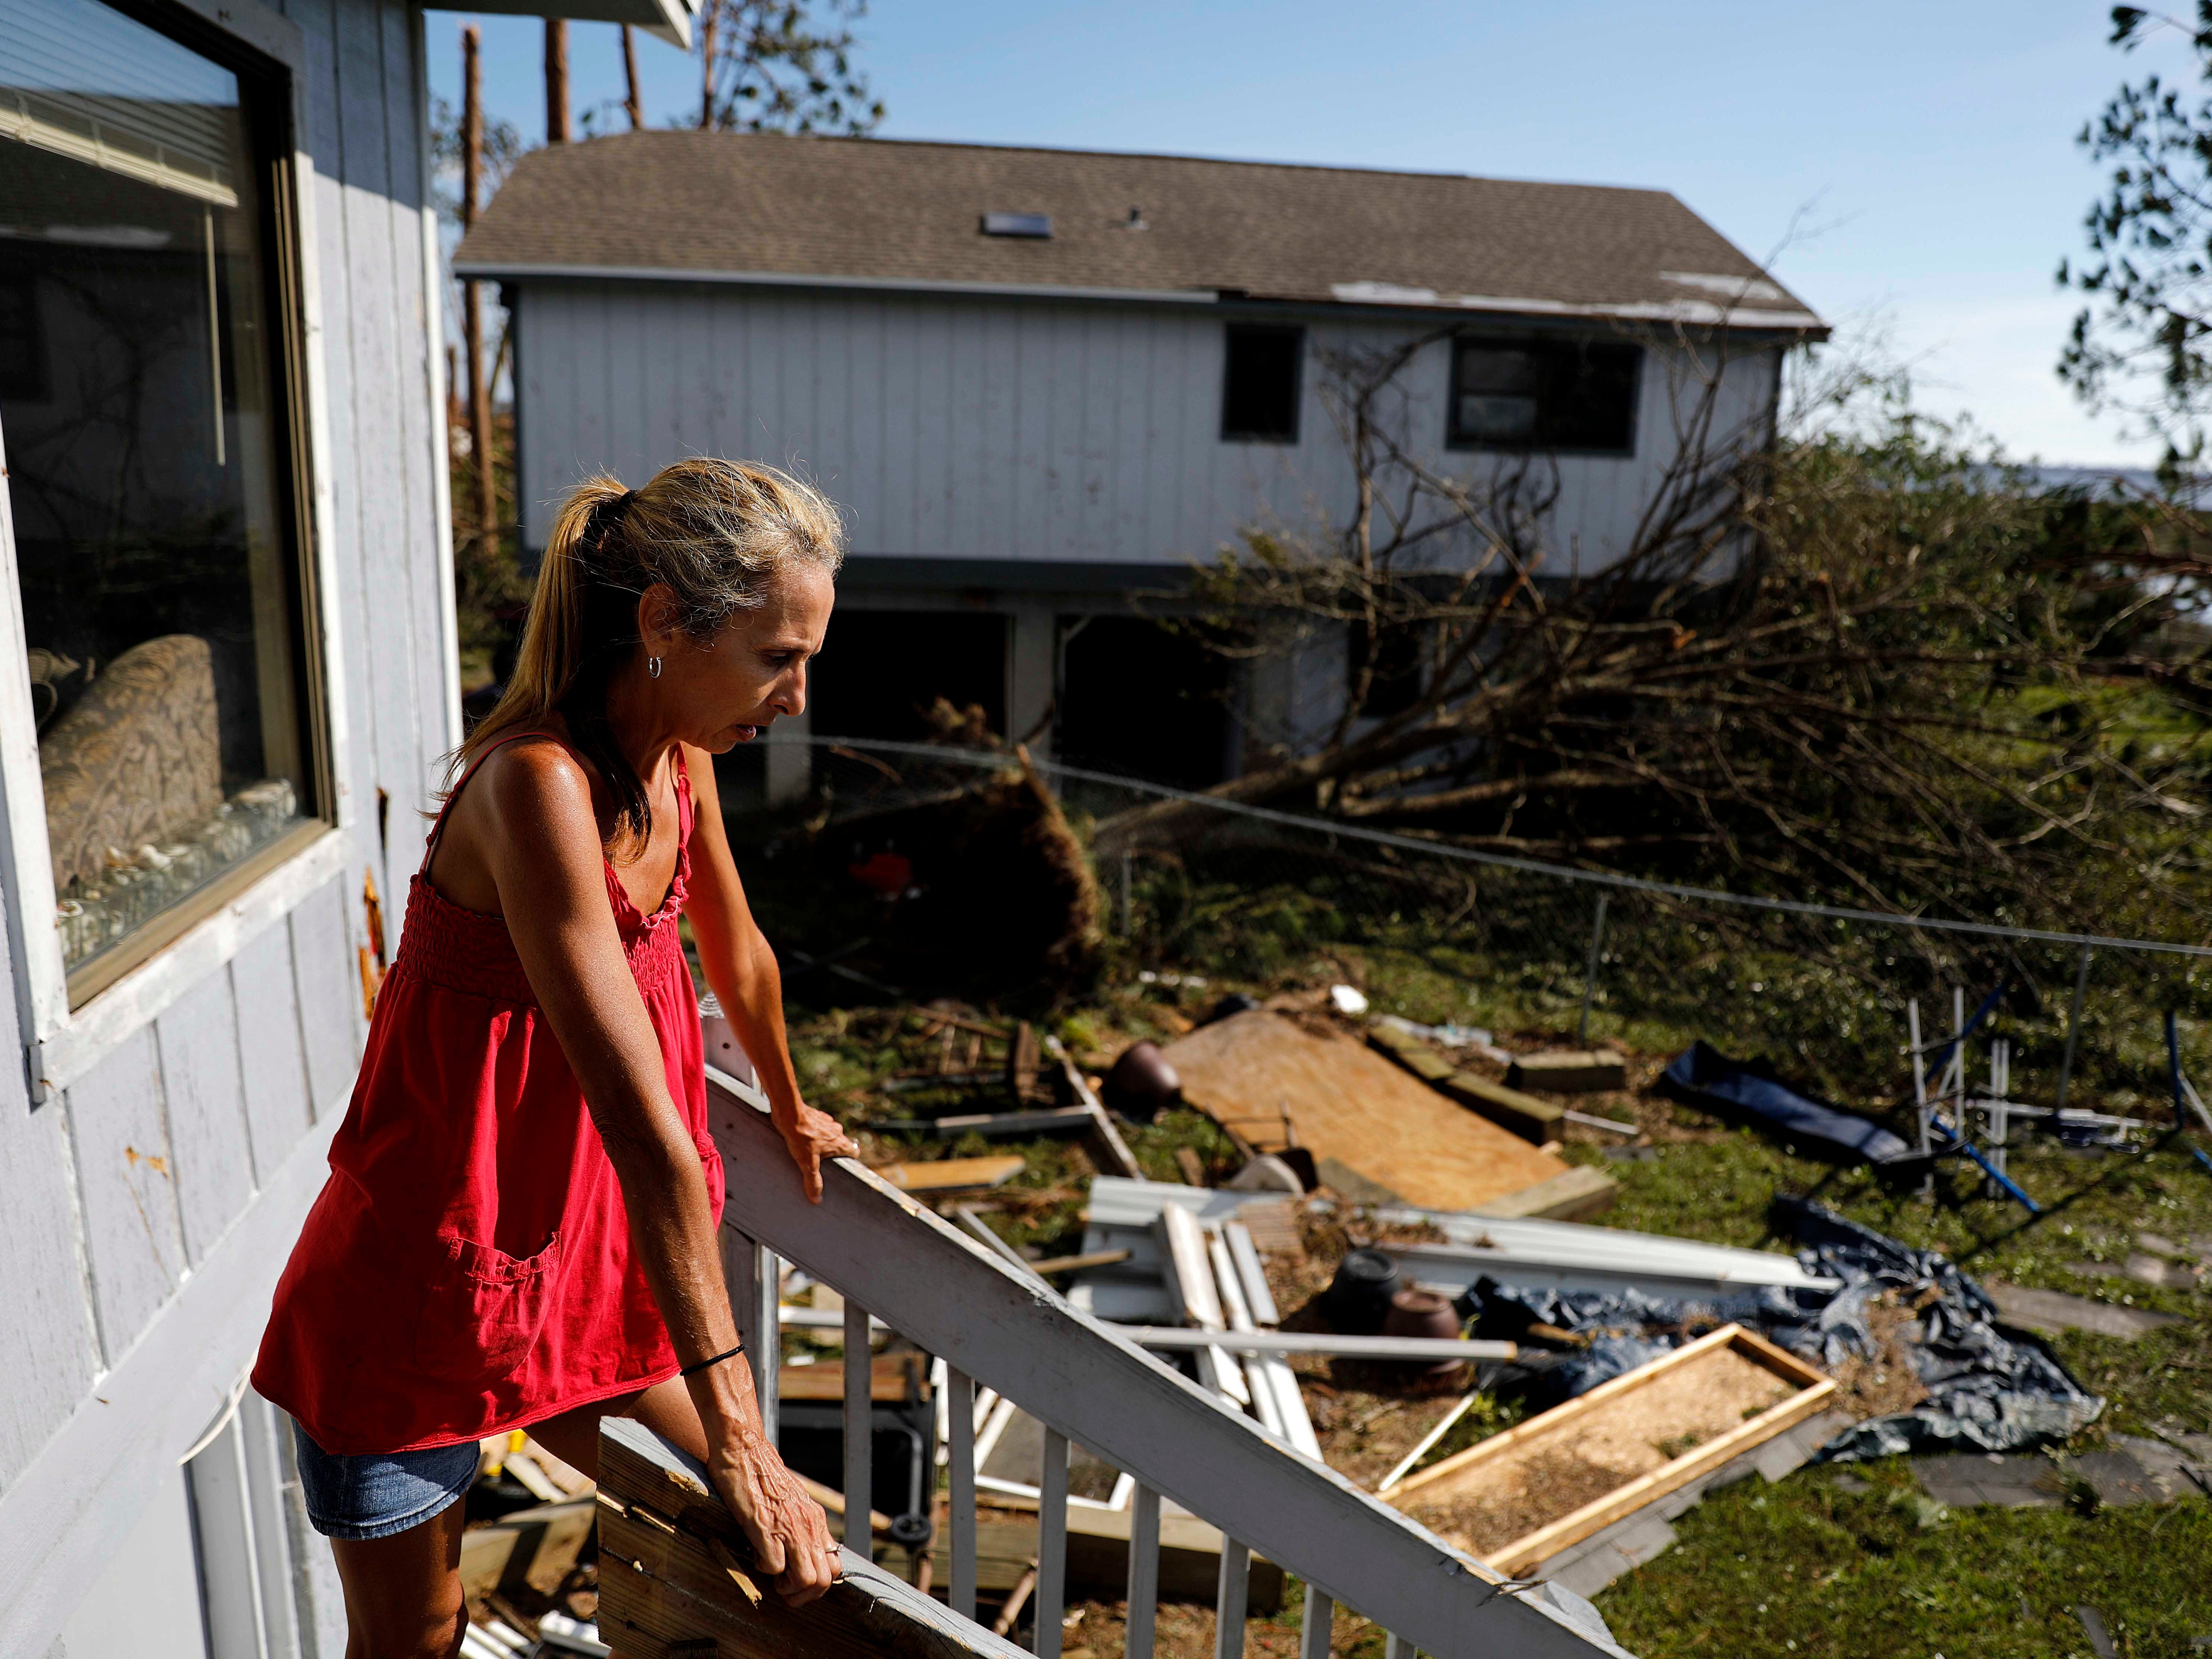 "Monica Jones looks out over the debris littering her yard after riding out hurricane Michael in her home in Callaway, Fla., Thursday, Oct. 11, 2018. ""I didn't think it was going to be this bad,"" said Jones on her decision to stay through the storm. The devastation inflicted by Hurricane Michael came into focus Thursday with rows upon rows of homes found smashed to pieces, and rescue crews began making their way into the stricken areas in hopes of accounting for hundreds of people who may have stayed behind."